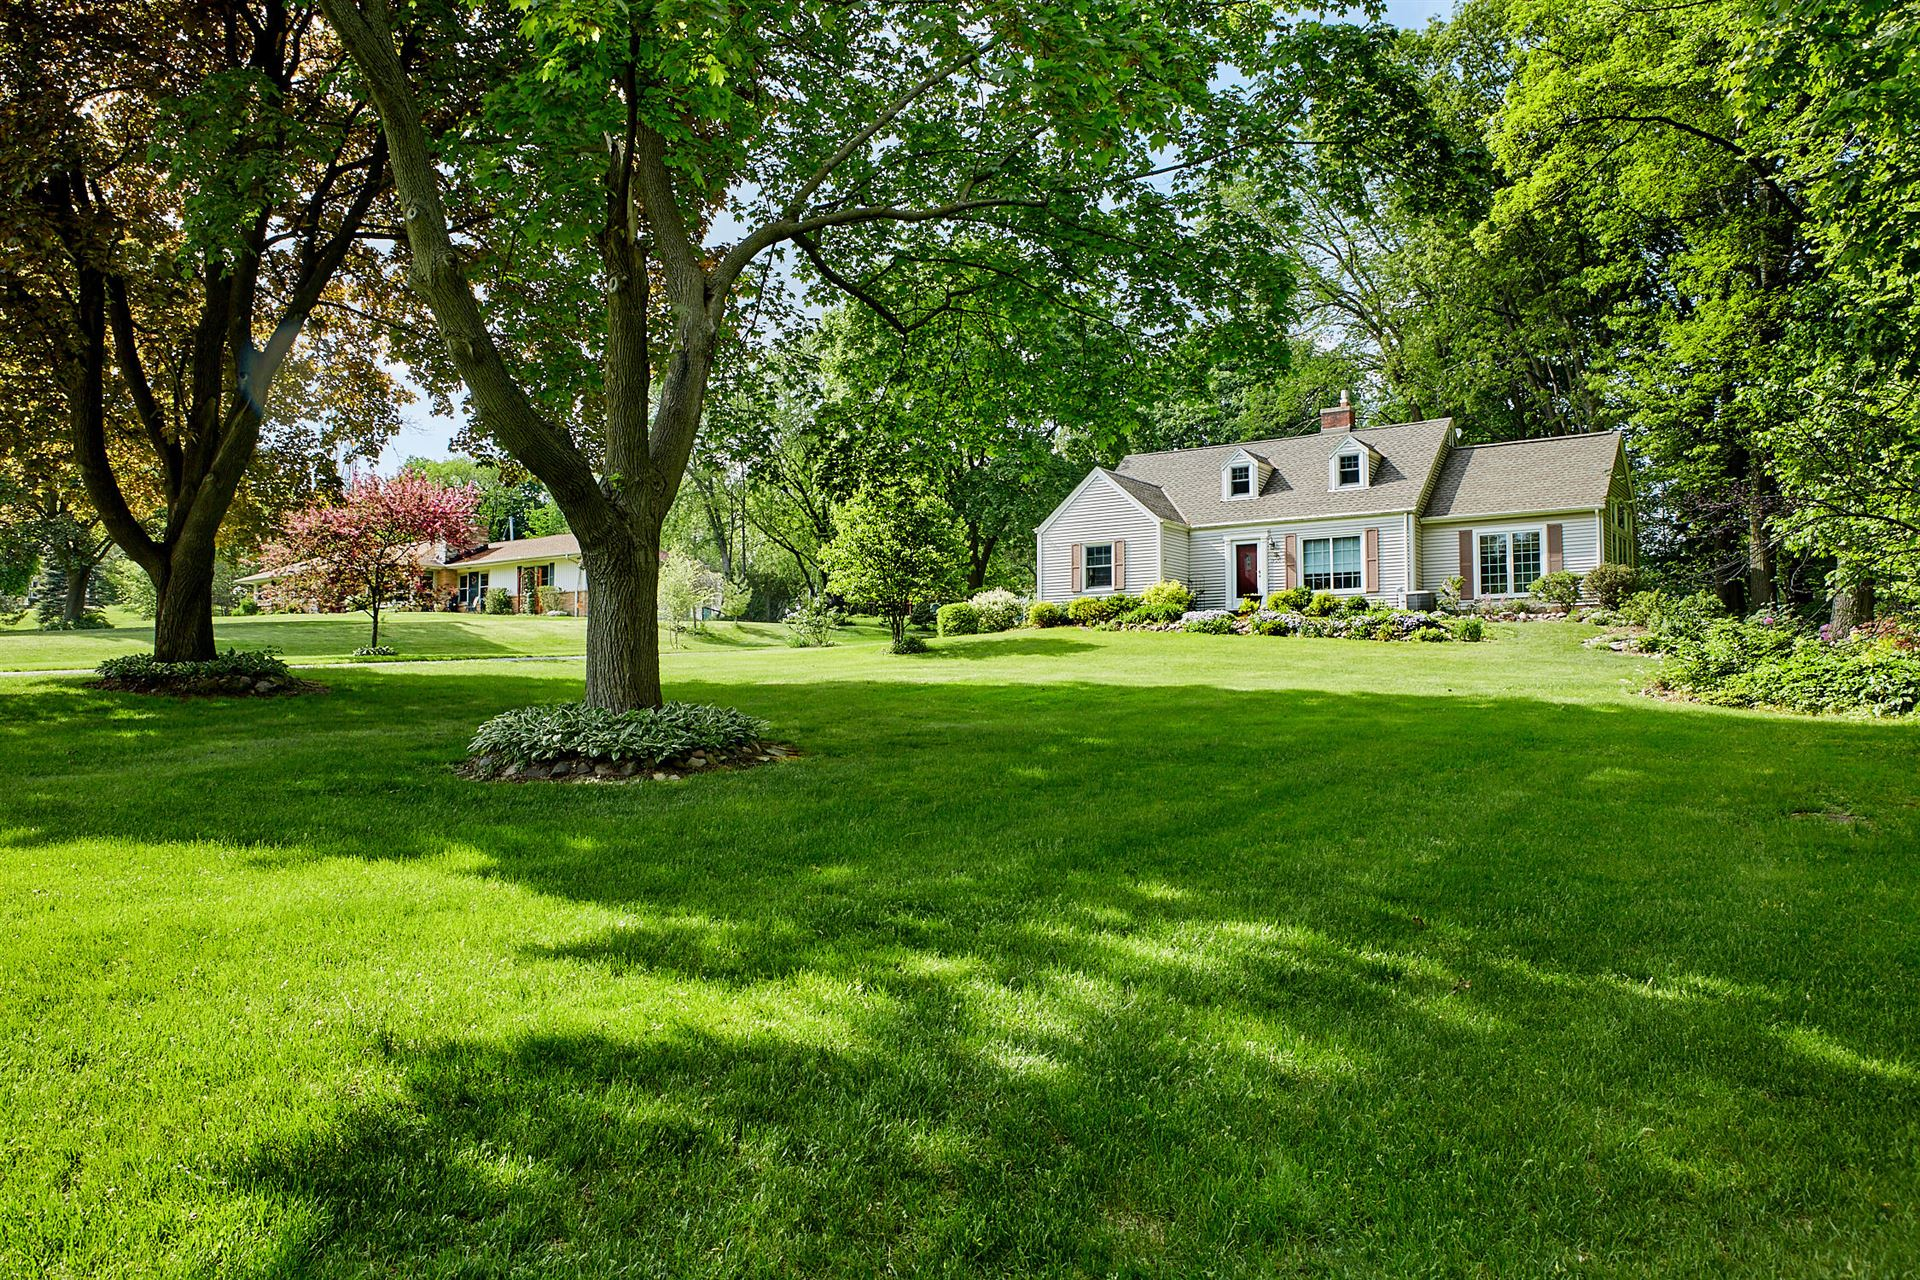 13620 Kinsey Park Dr, Brookfield, WI 53005 - #: 1695594